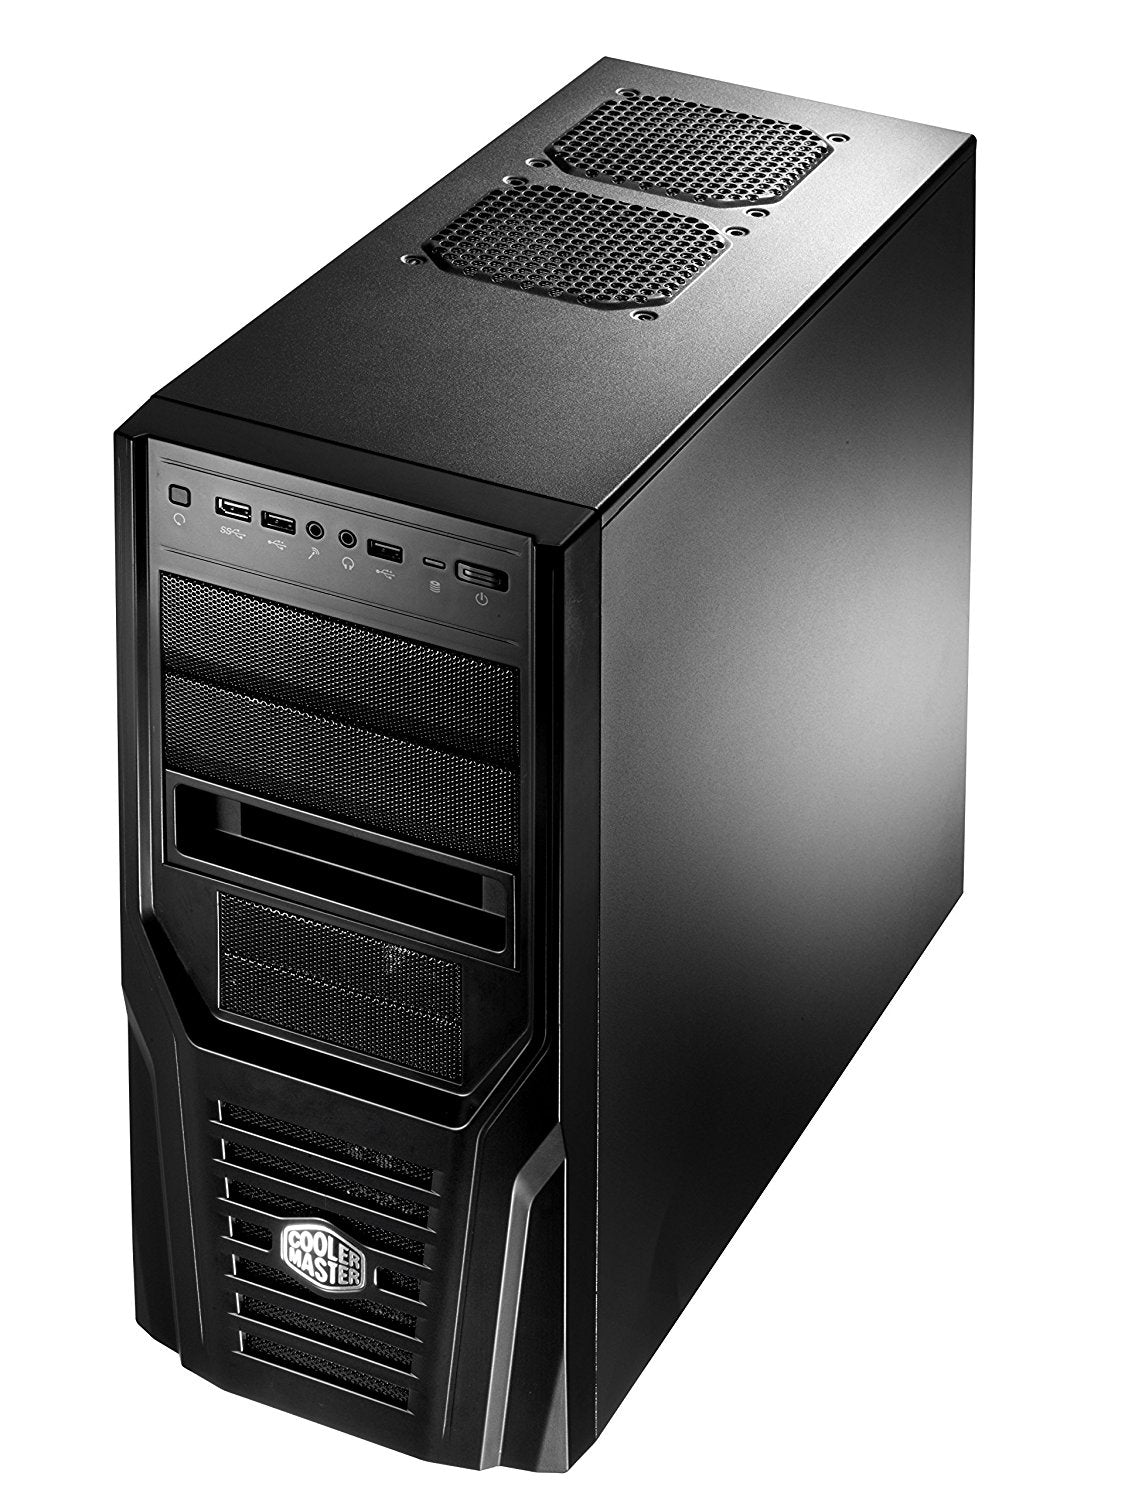 Cooler Master Elite 431 Plus RC-431P-KWN2 CPU Cabinet (Black)